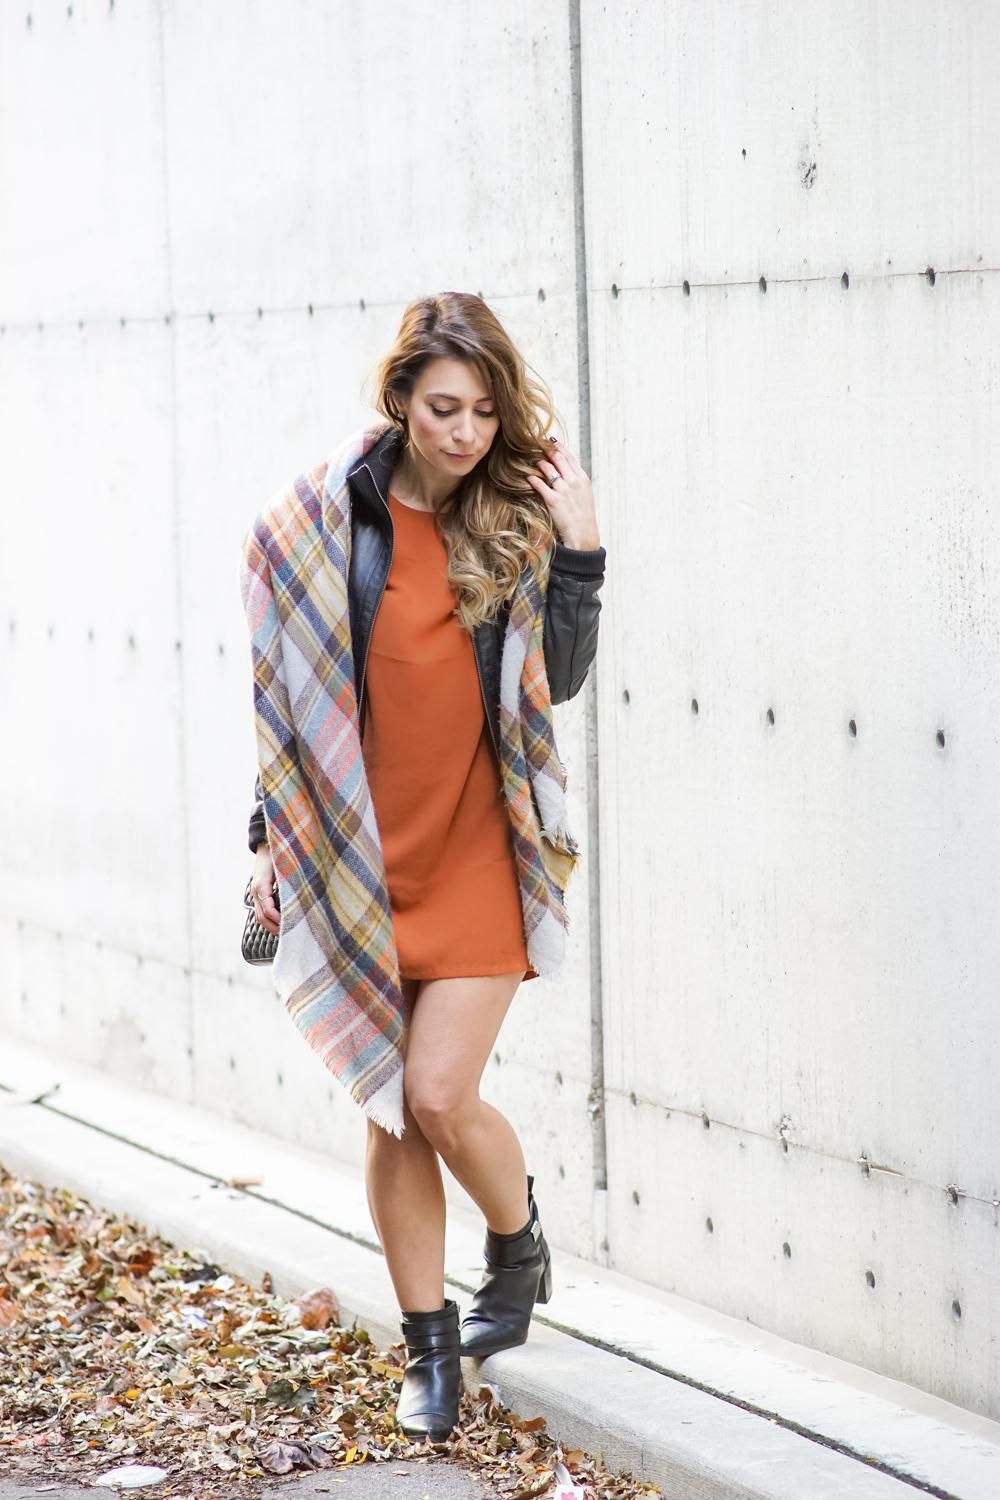 A woman is wearing a cardigan decorated with tartan style checks, an orangey minidress and black leather ankle boots